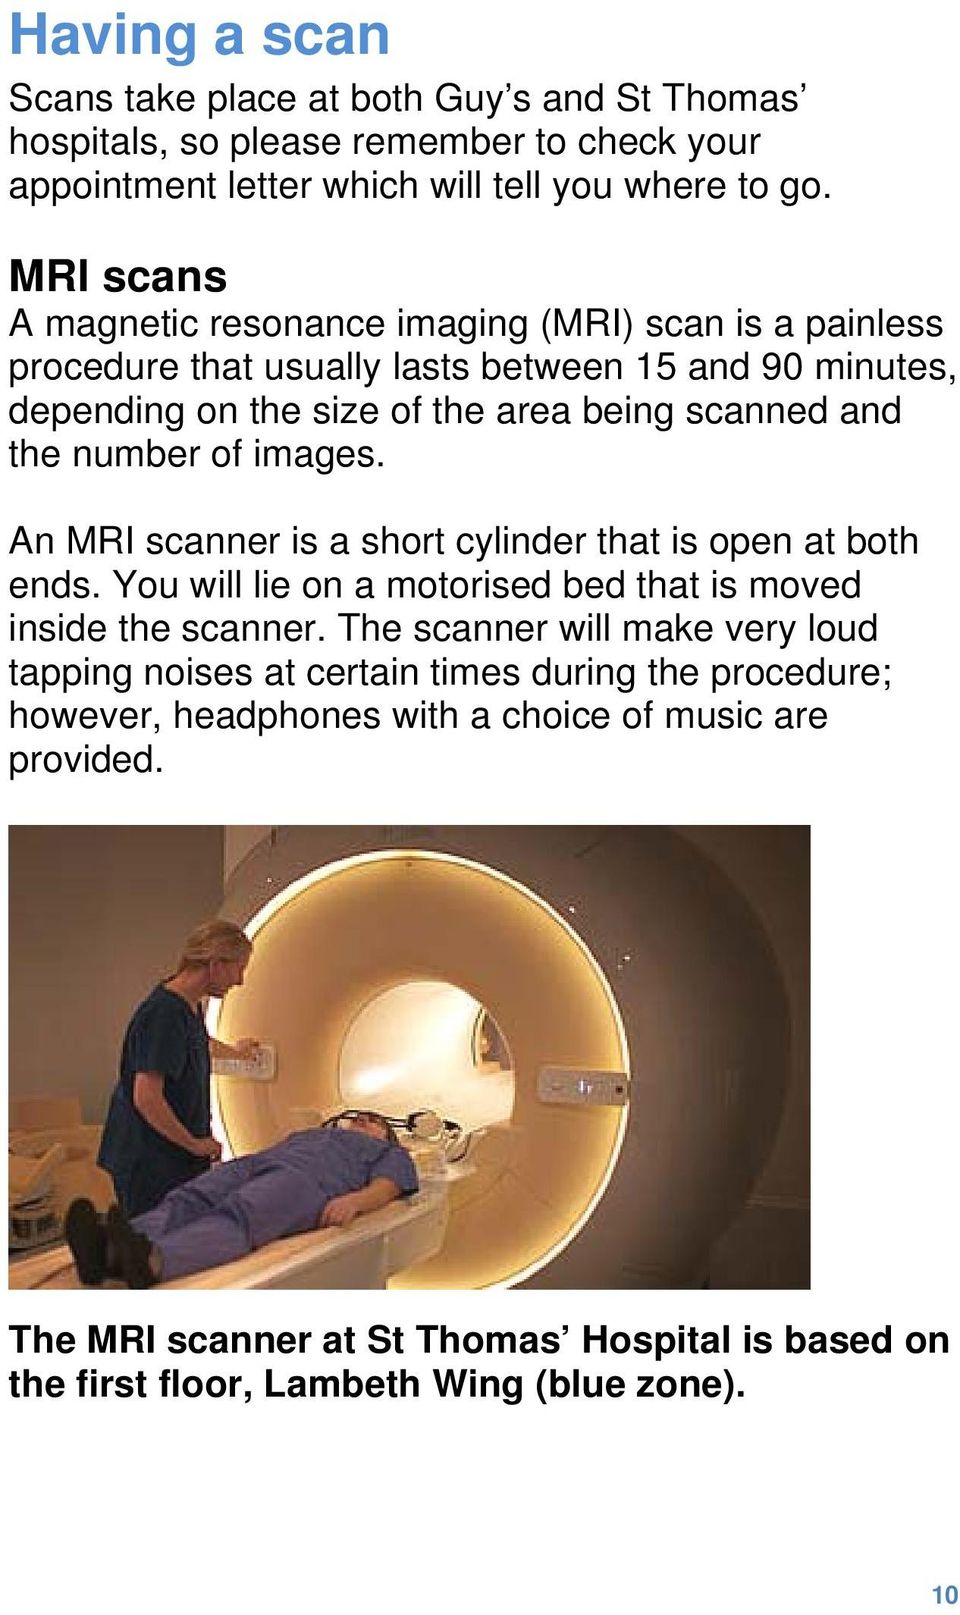 number of images. An MRI scanner is a short cylinder that is open at both ends. You will lie on a motorised bed that is moved inside the scanner.